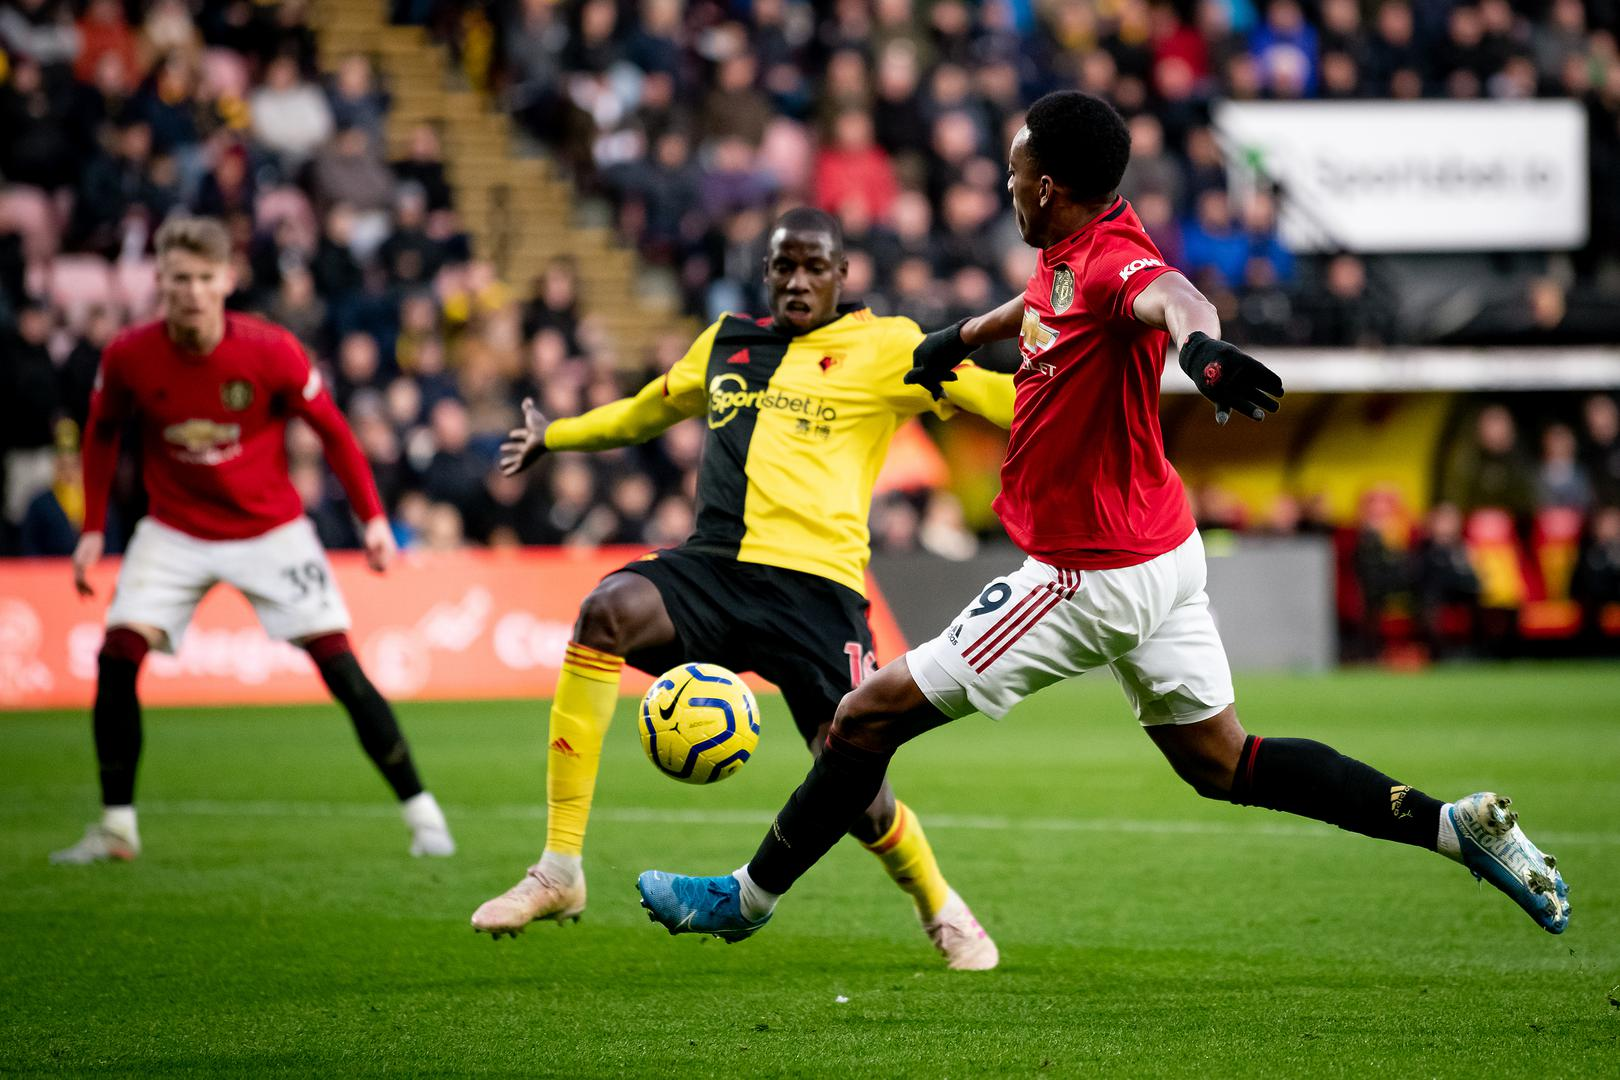 Anthony Martial playing for Manchester United against Watford.